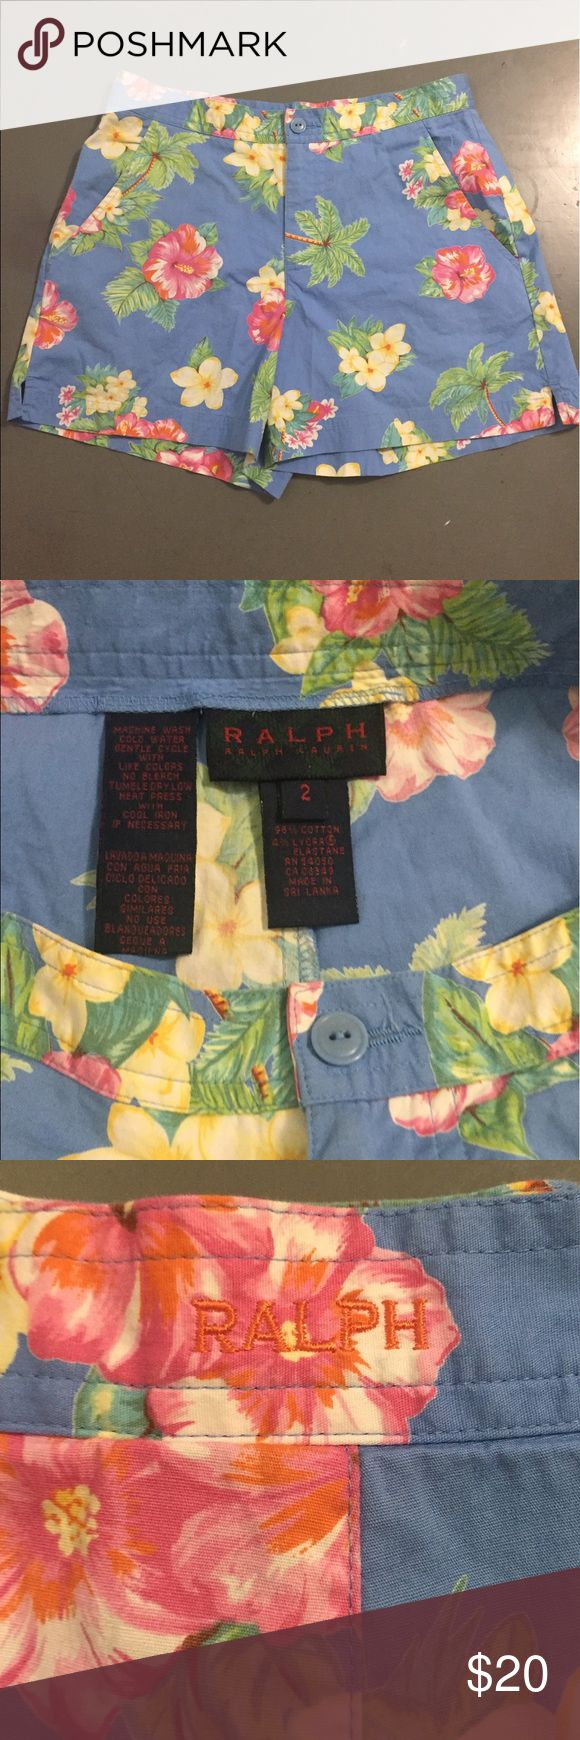 """Ralph Lauren women's floral shorts Ralph Lauren women's floral shorts. These have a floral pattern throughout shorts. Also have """"Ralph"""" embroidered as pictured on back waist of shorts. These are perfect for a day out golfing or you could even dress these up!! Ralph Lauren Shorts"""